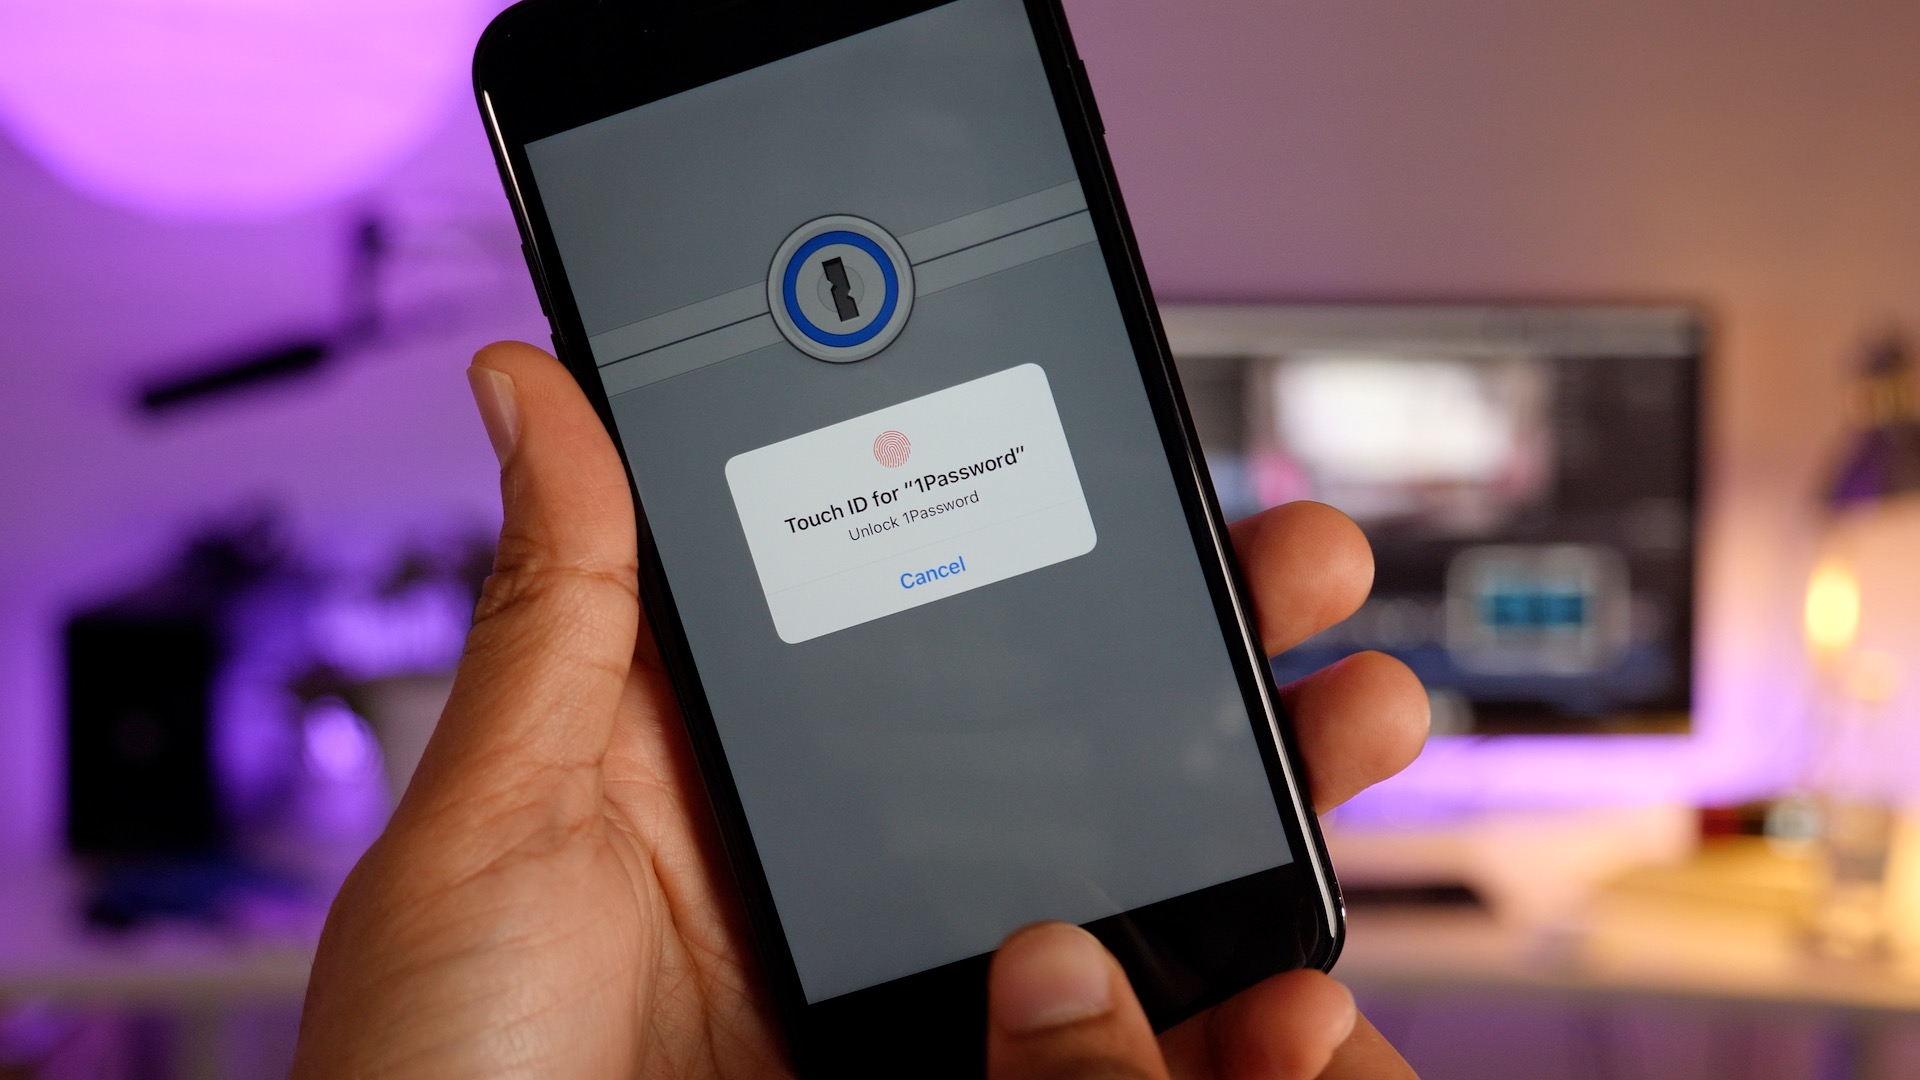 1password for ios updated with rich text support in notes sticker pack for messages much more